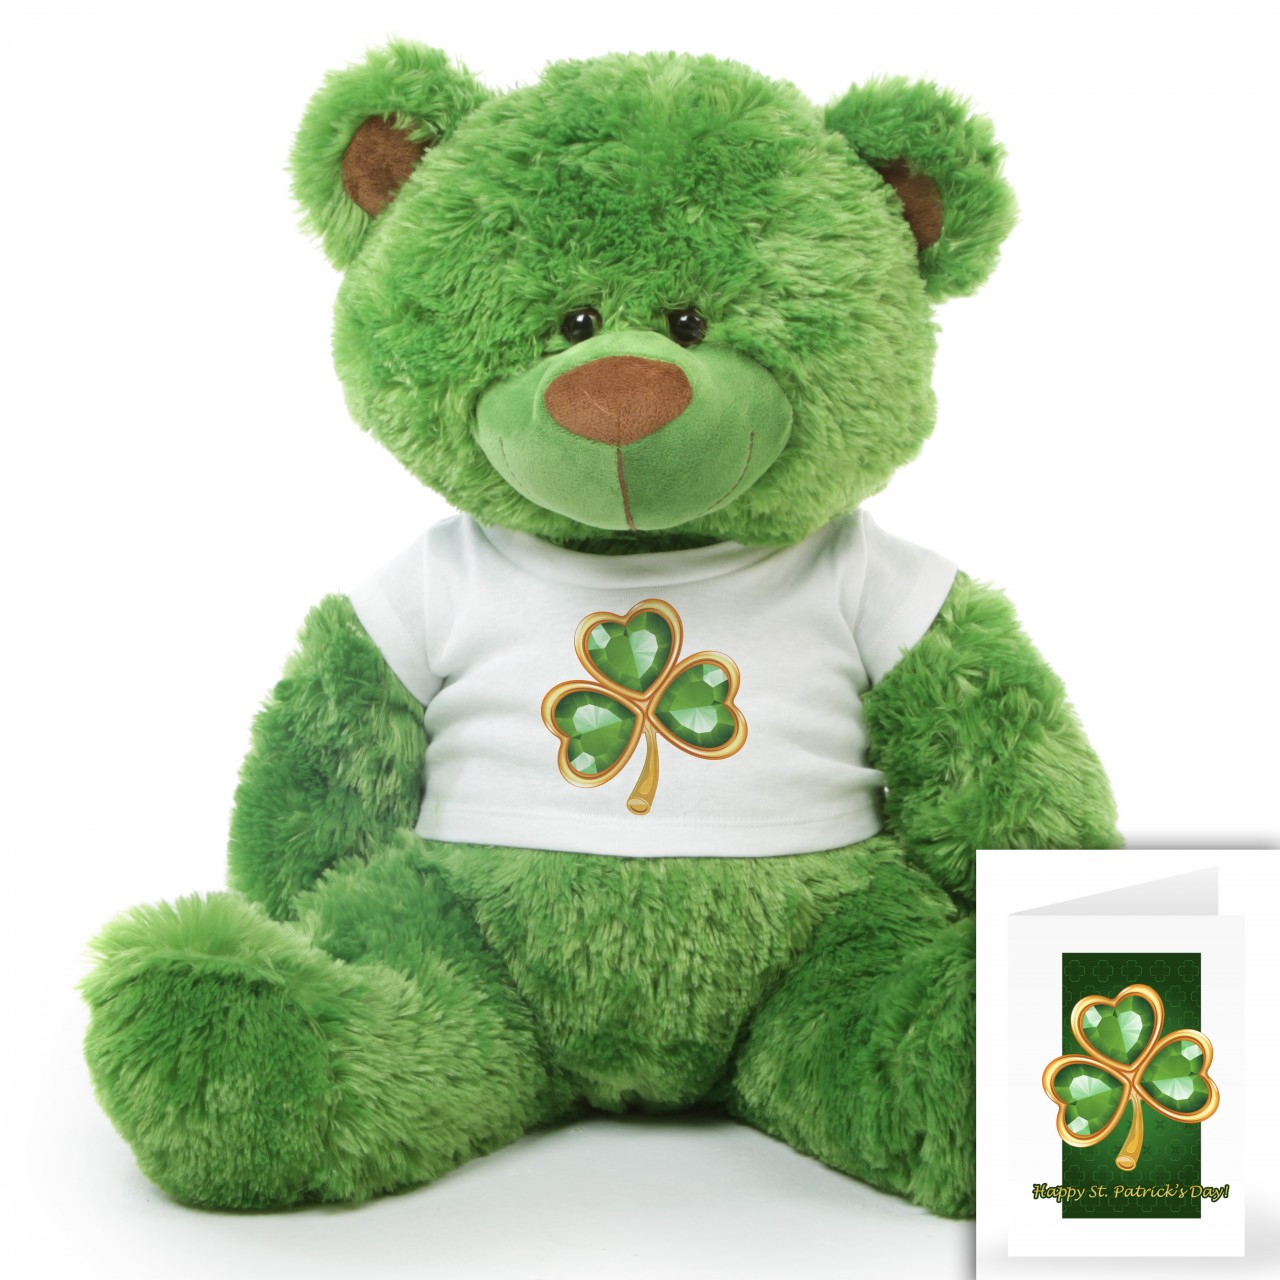 Image result for saint patricks day teddy bear